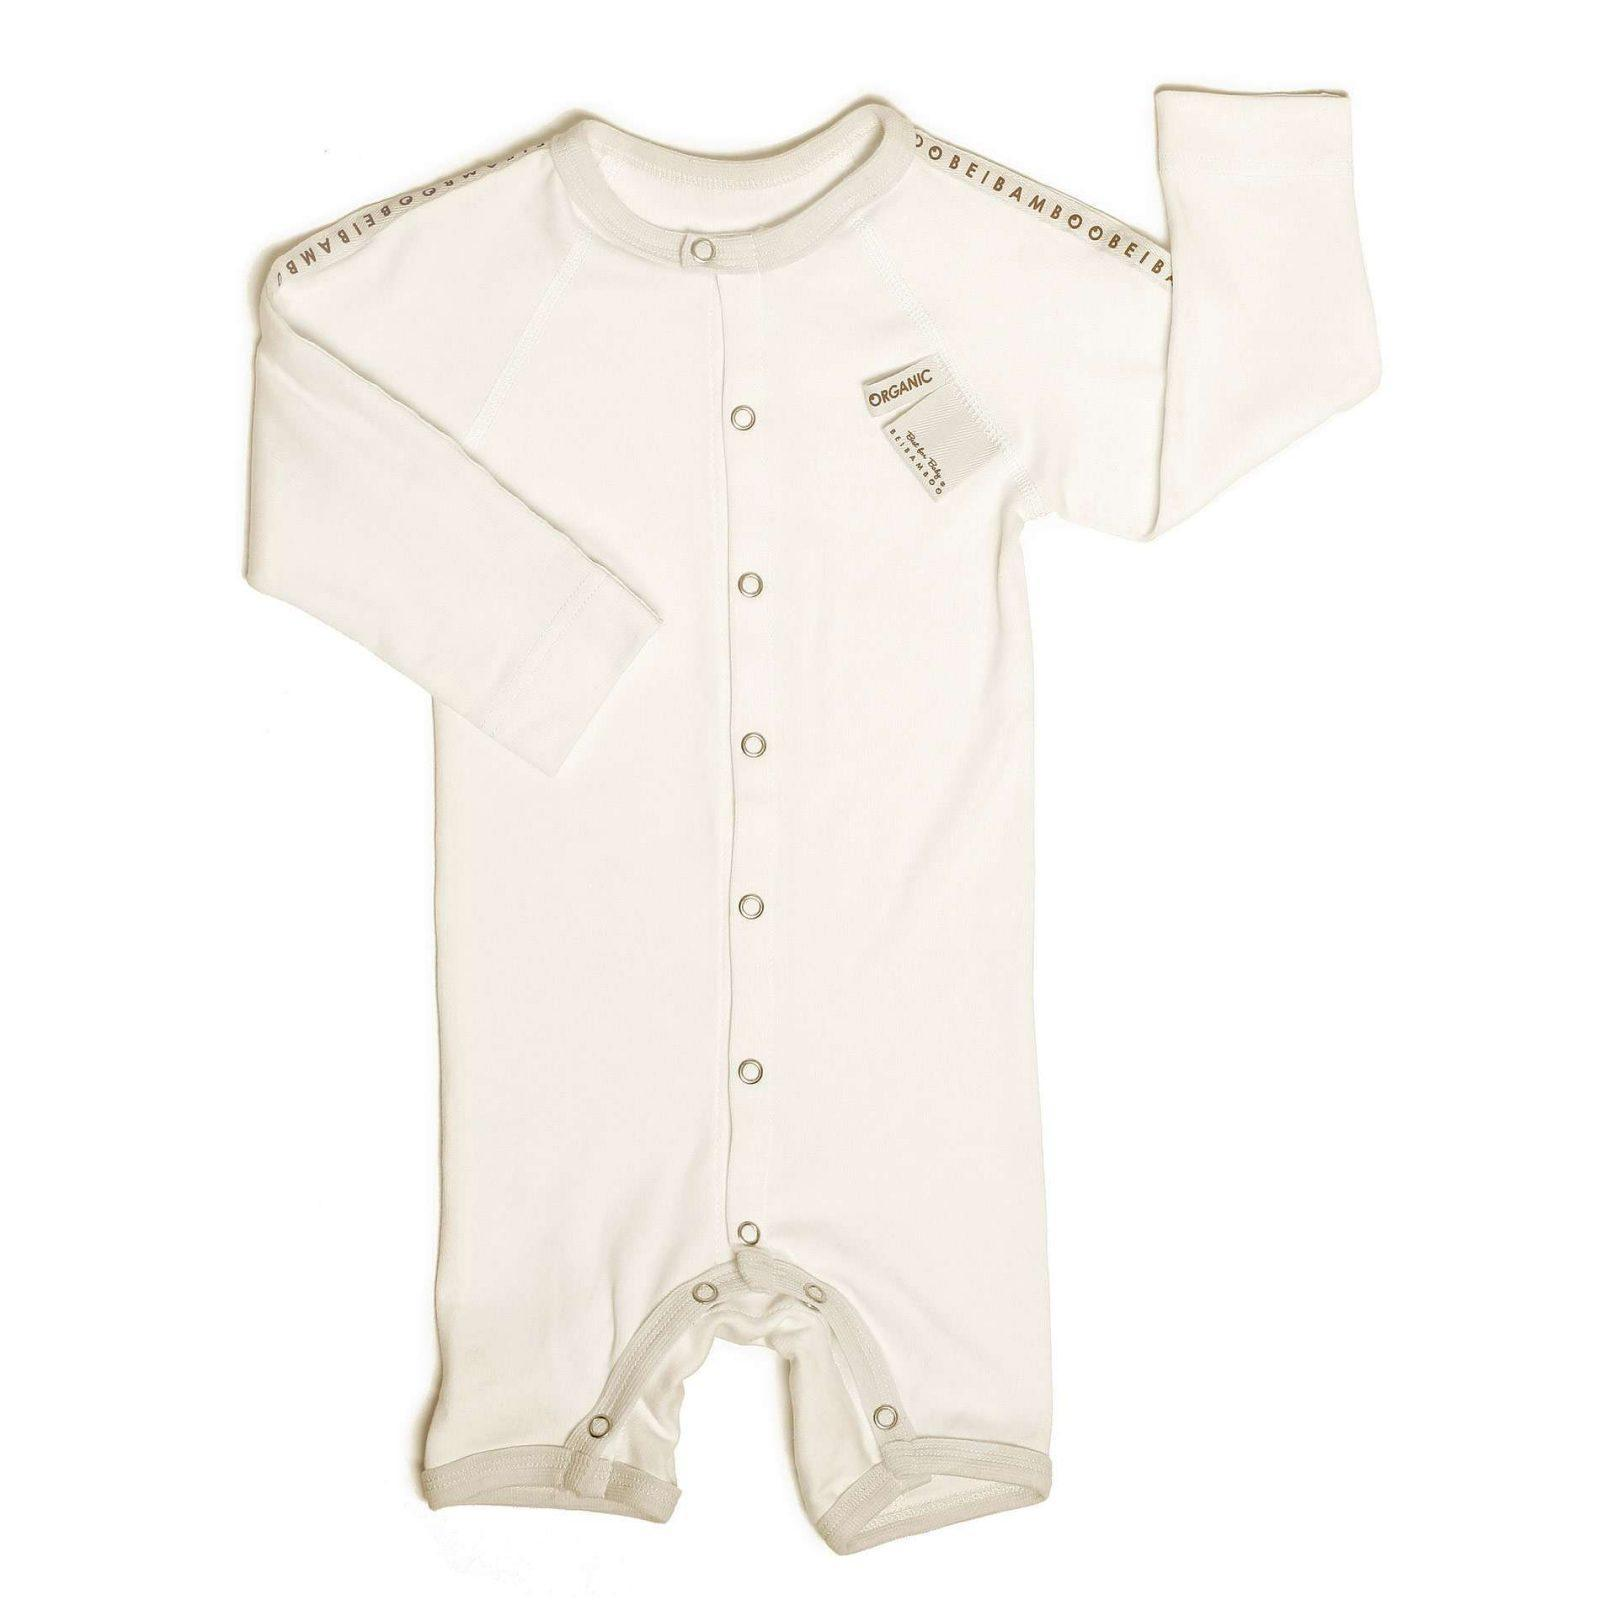 white pyjama with short legs fast delivery shop online web shop